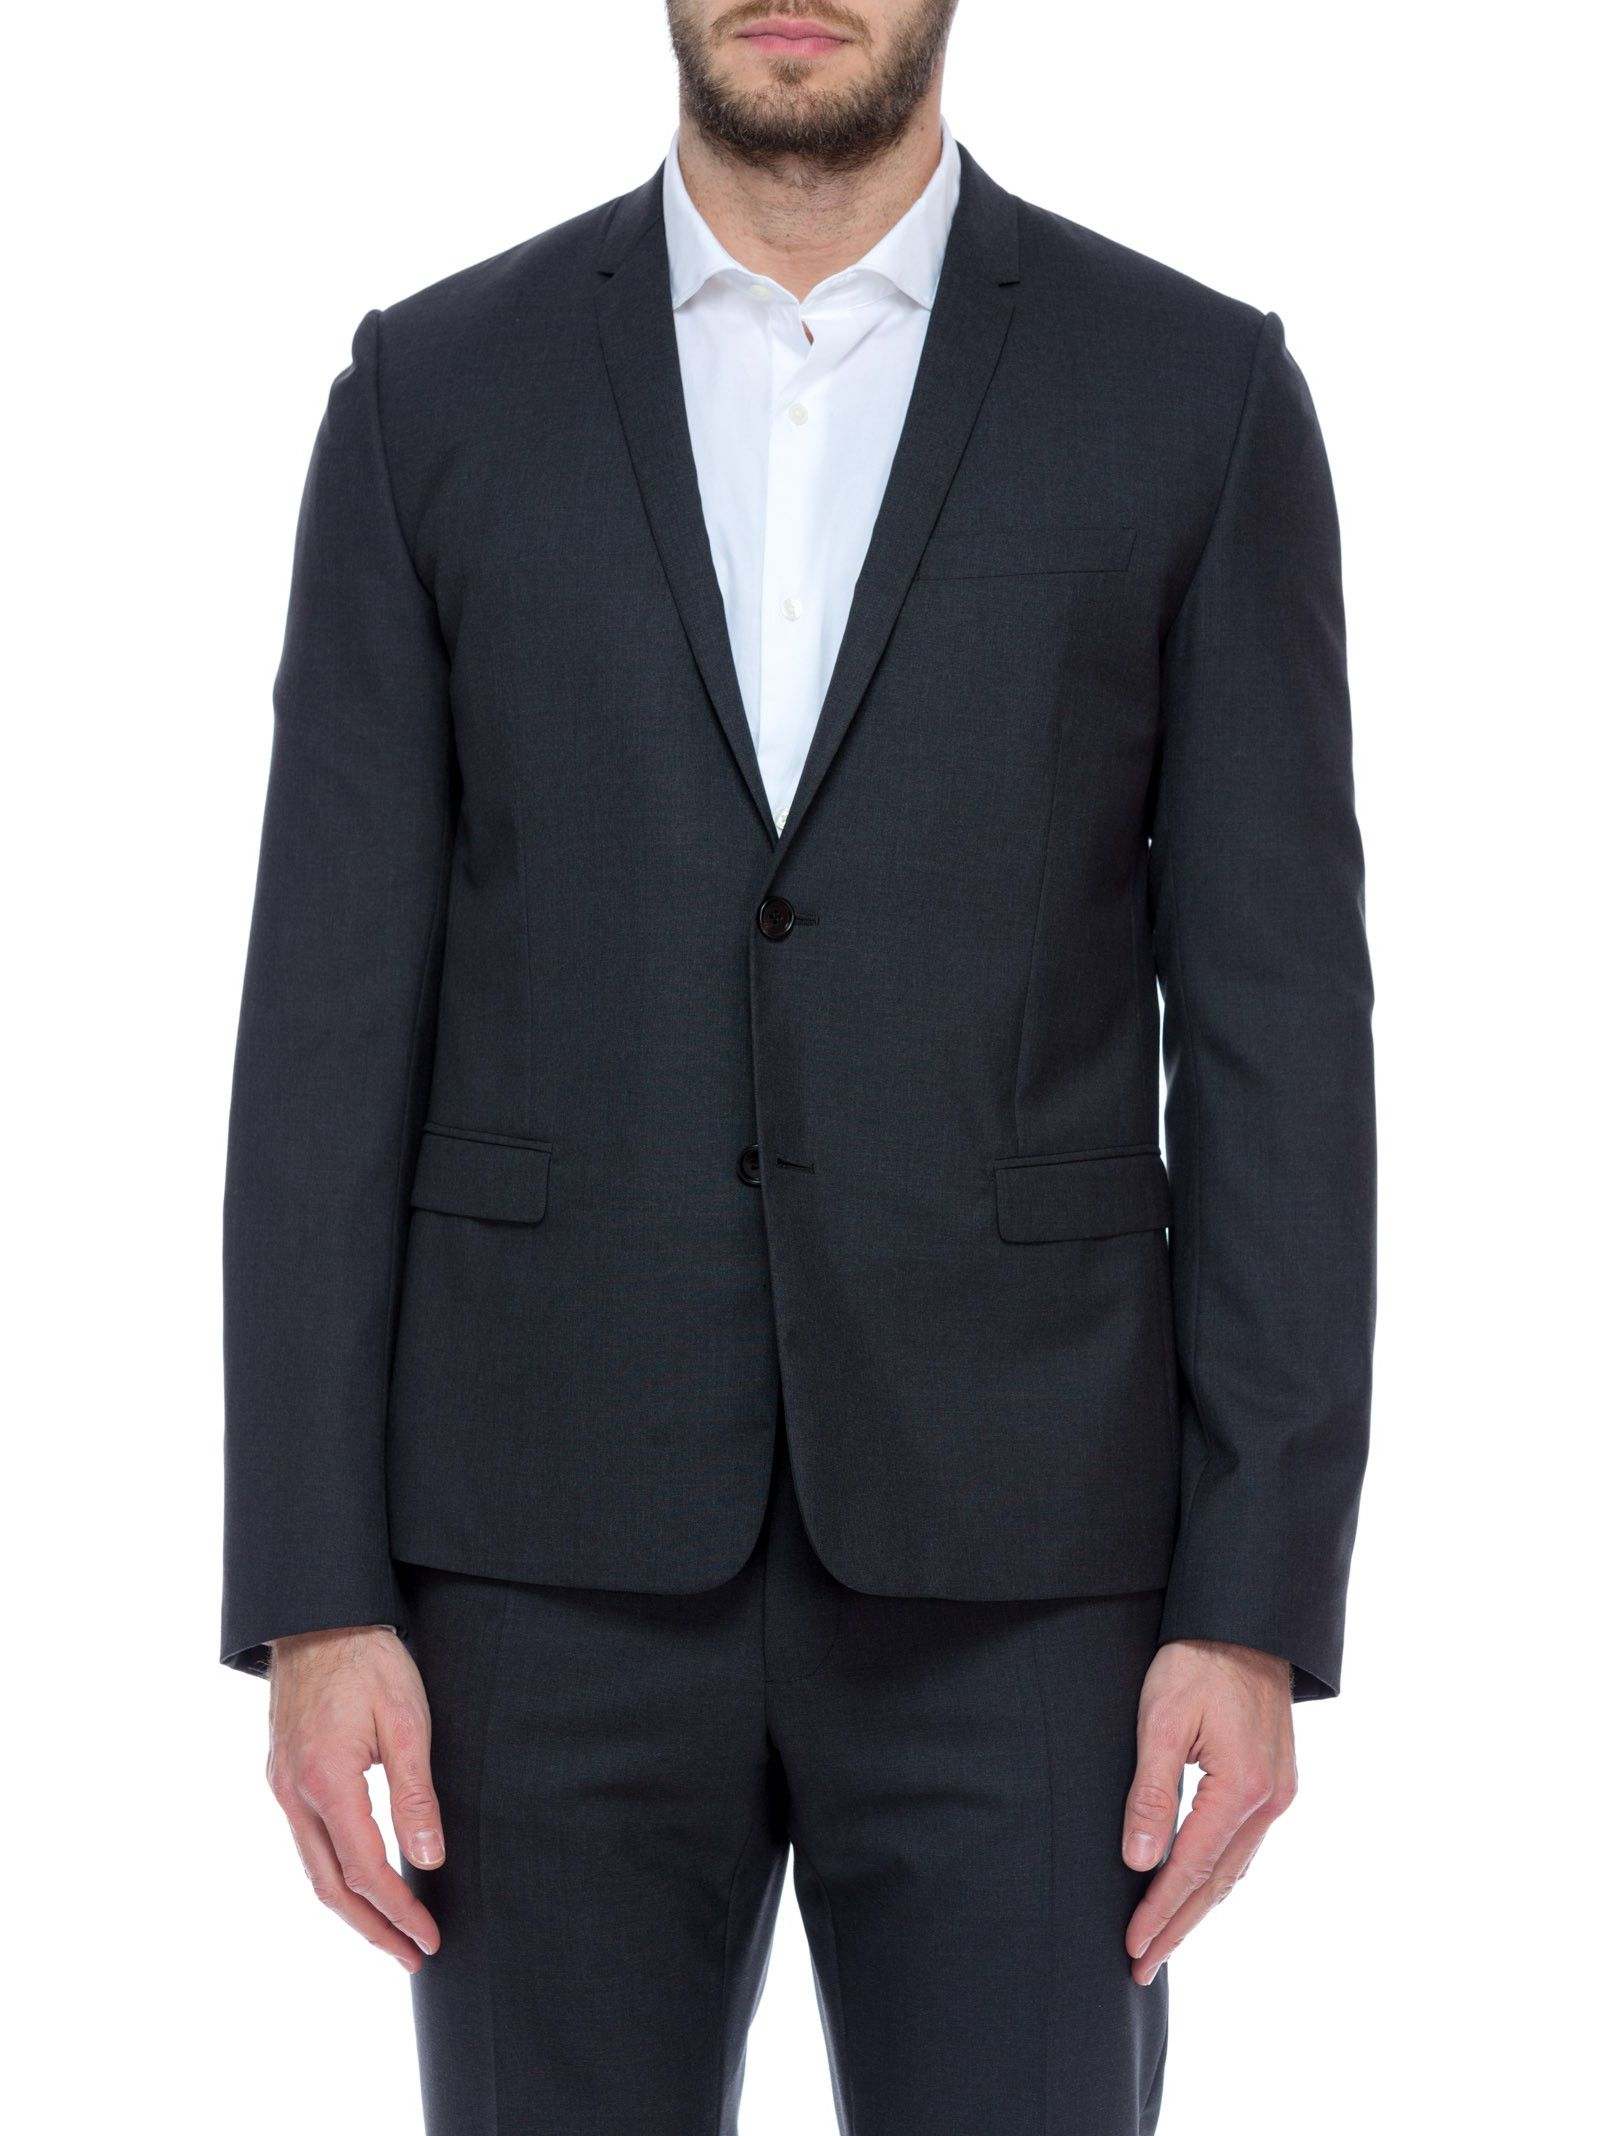 Dior Homme Two Piece Suit